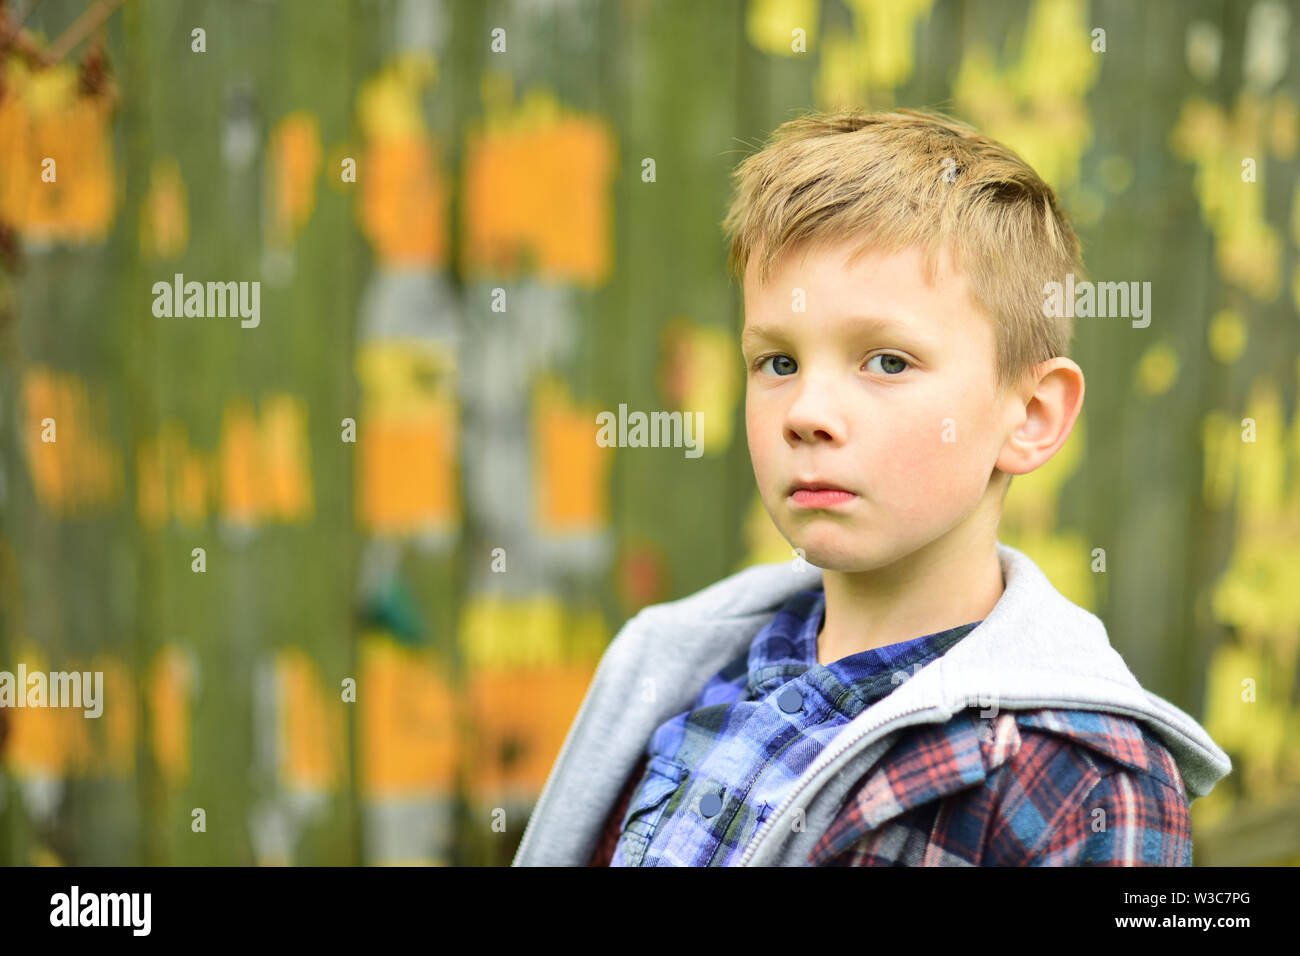 Serious and smart. Serious boy. Small boy look serious. Small child with thinking face. Focusing on something - Stock Image